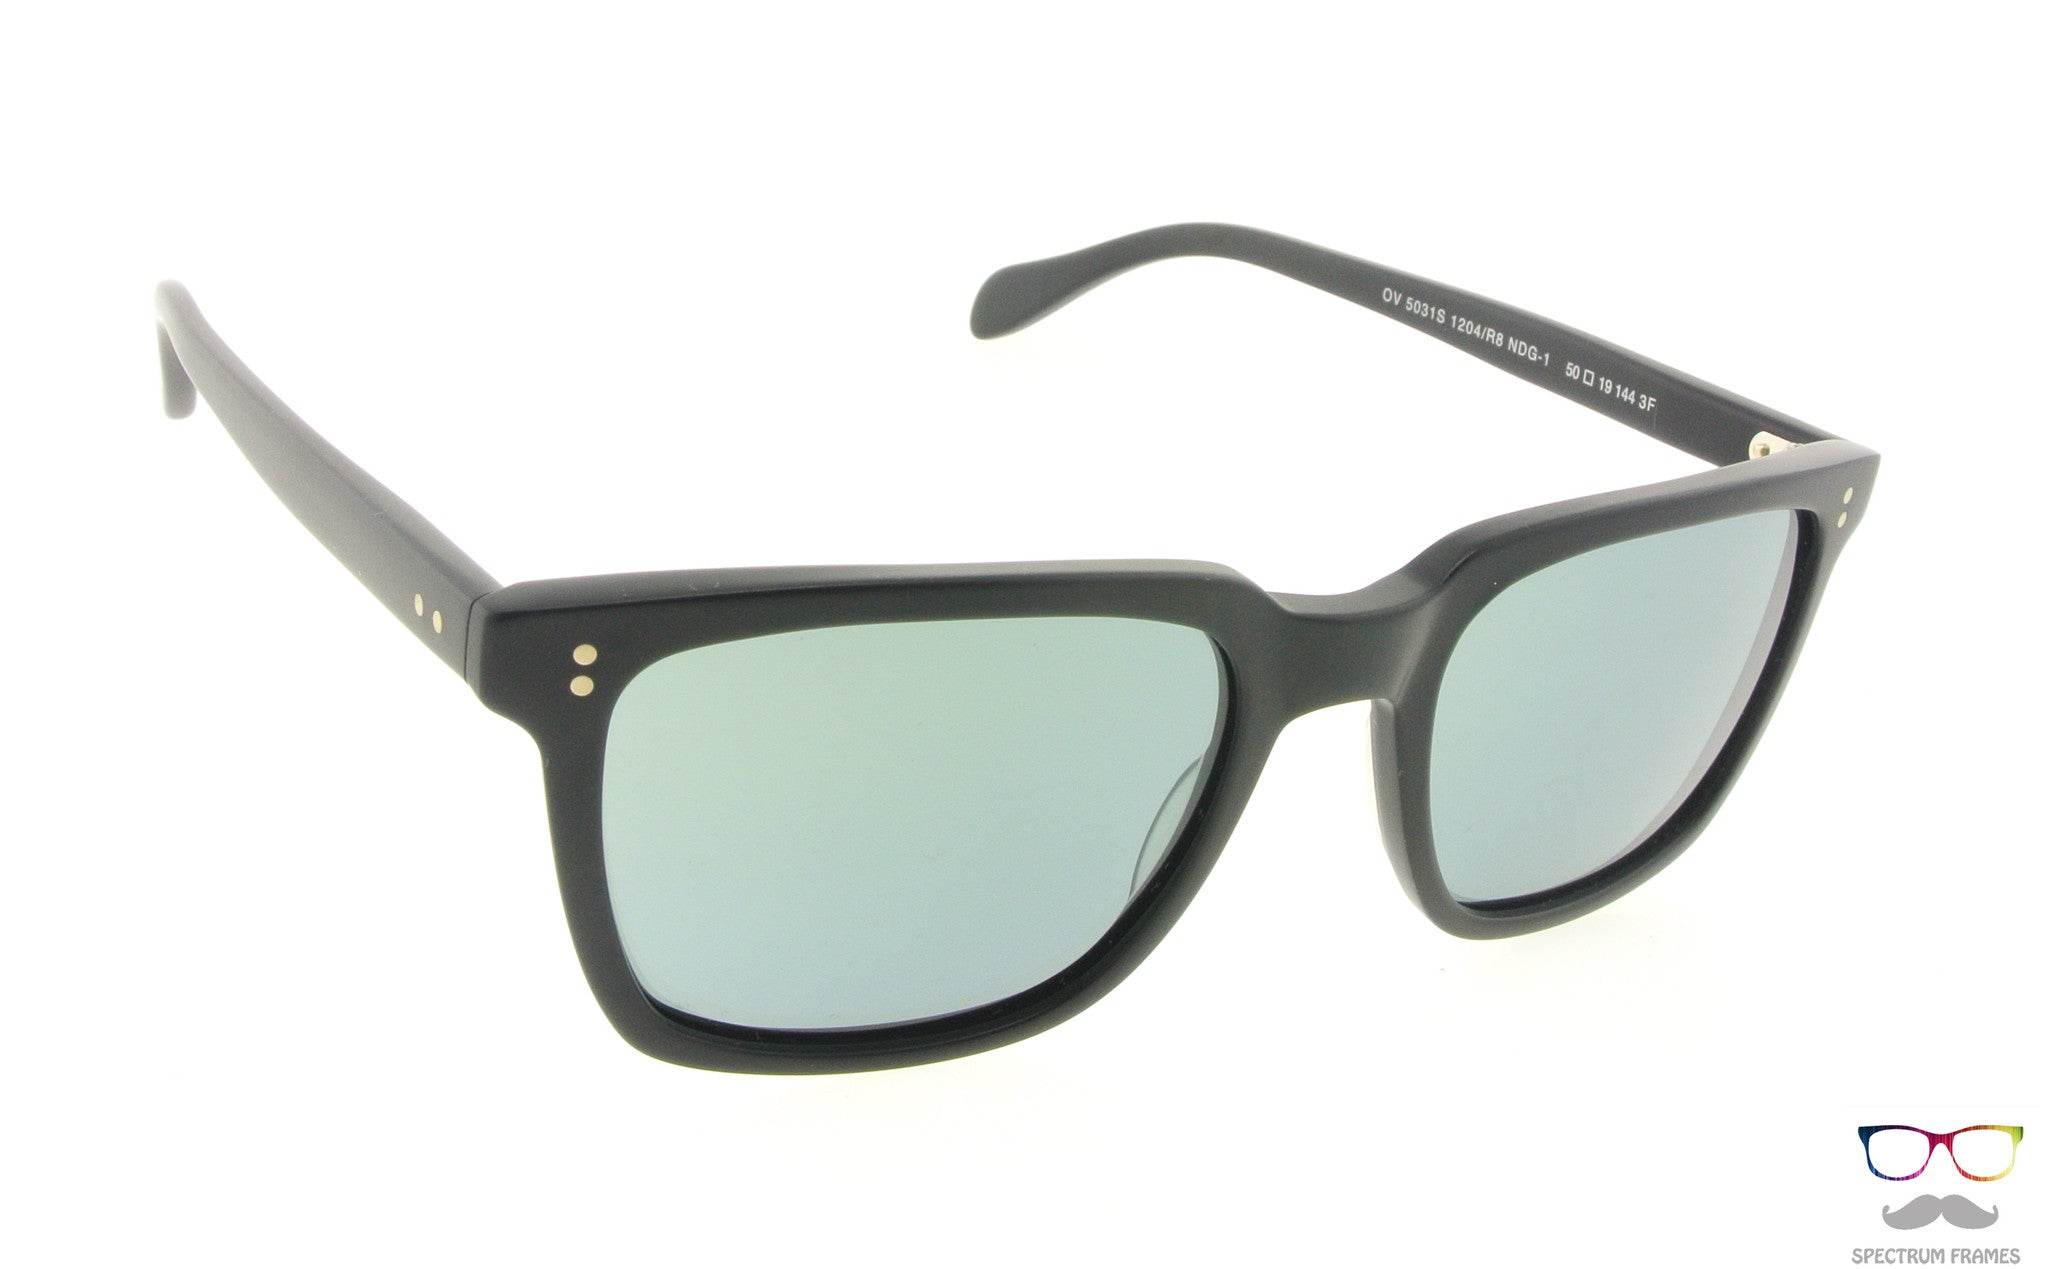 d9f9a006087 ... Oliver Peoples Sunglasses NDG 5031S 1204R8 Black with Indigo  Photochromatic Lens ...